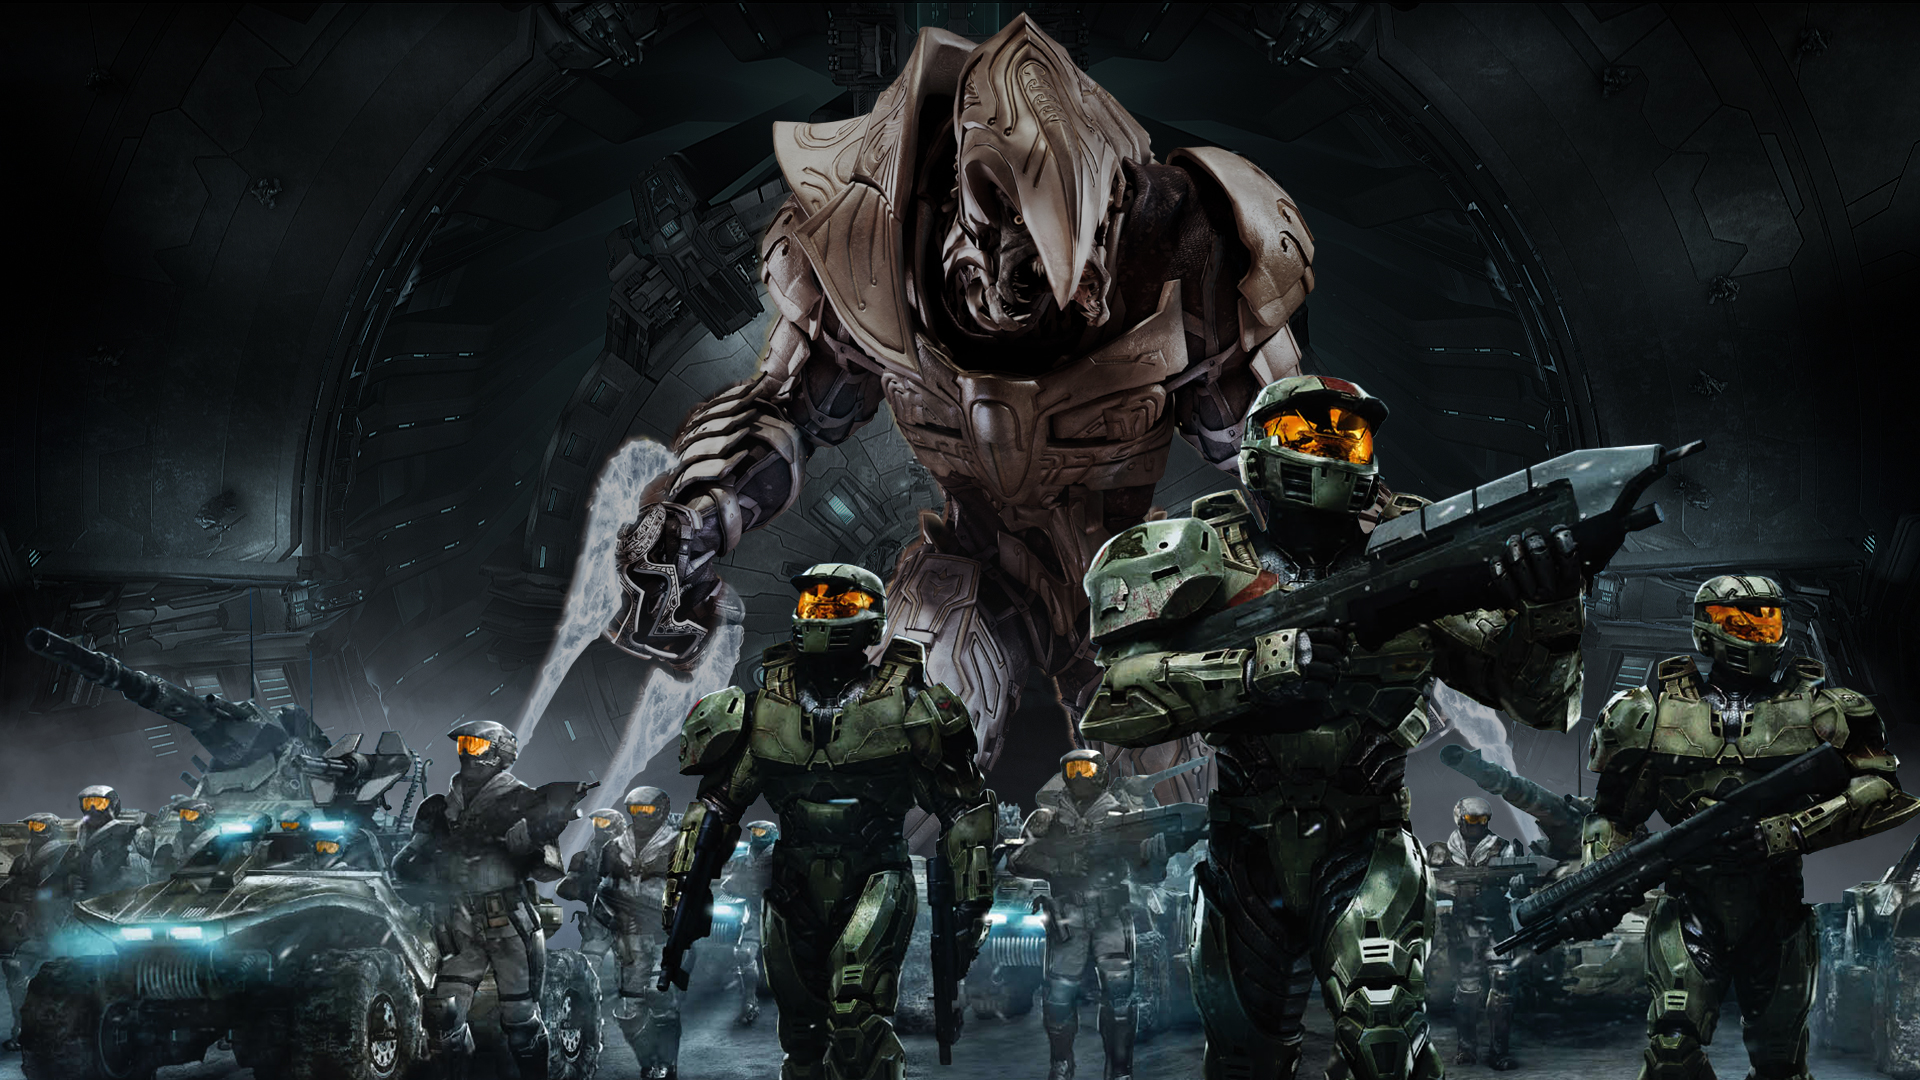 10 halo wars hd wallpapers backgrounds wallpaper abyss - Wallpaper halo wars ...